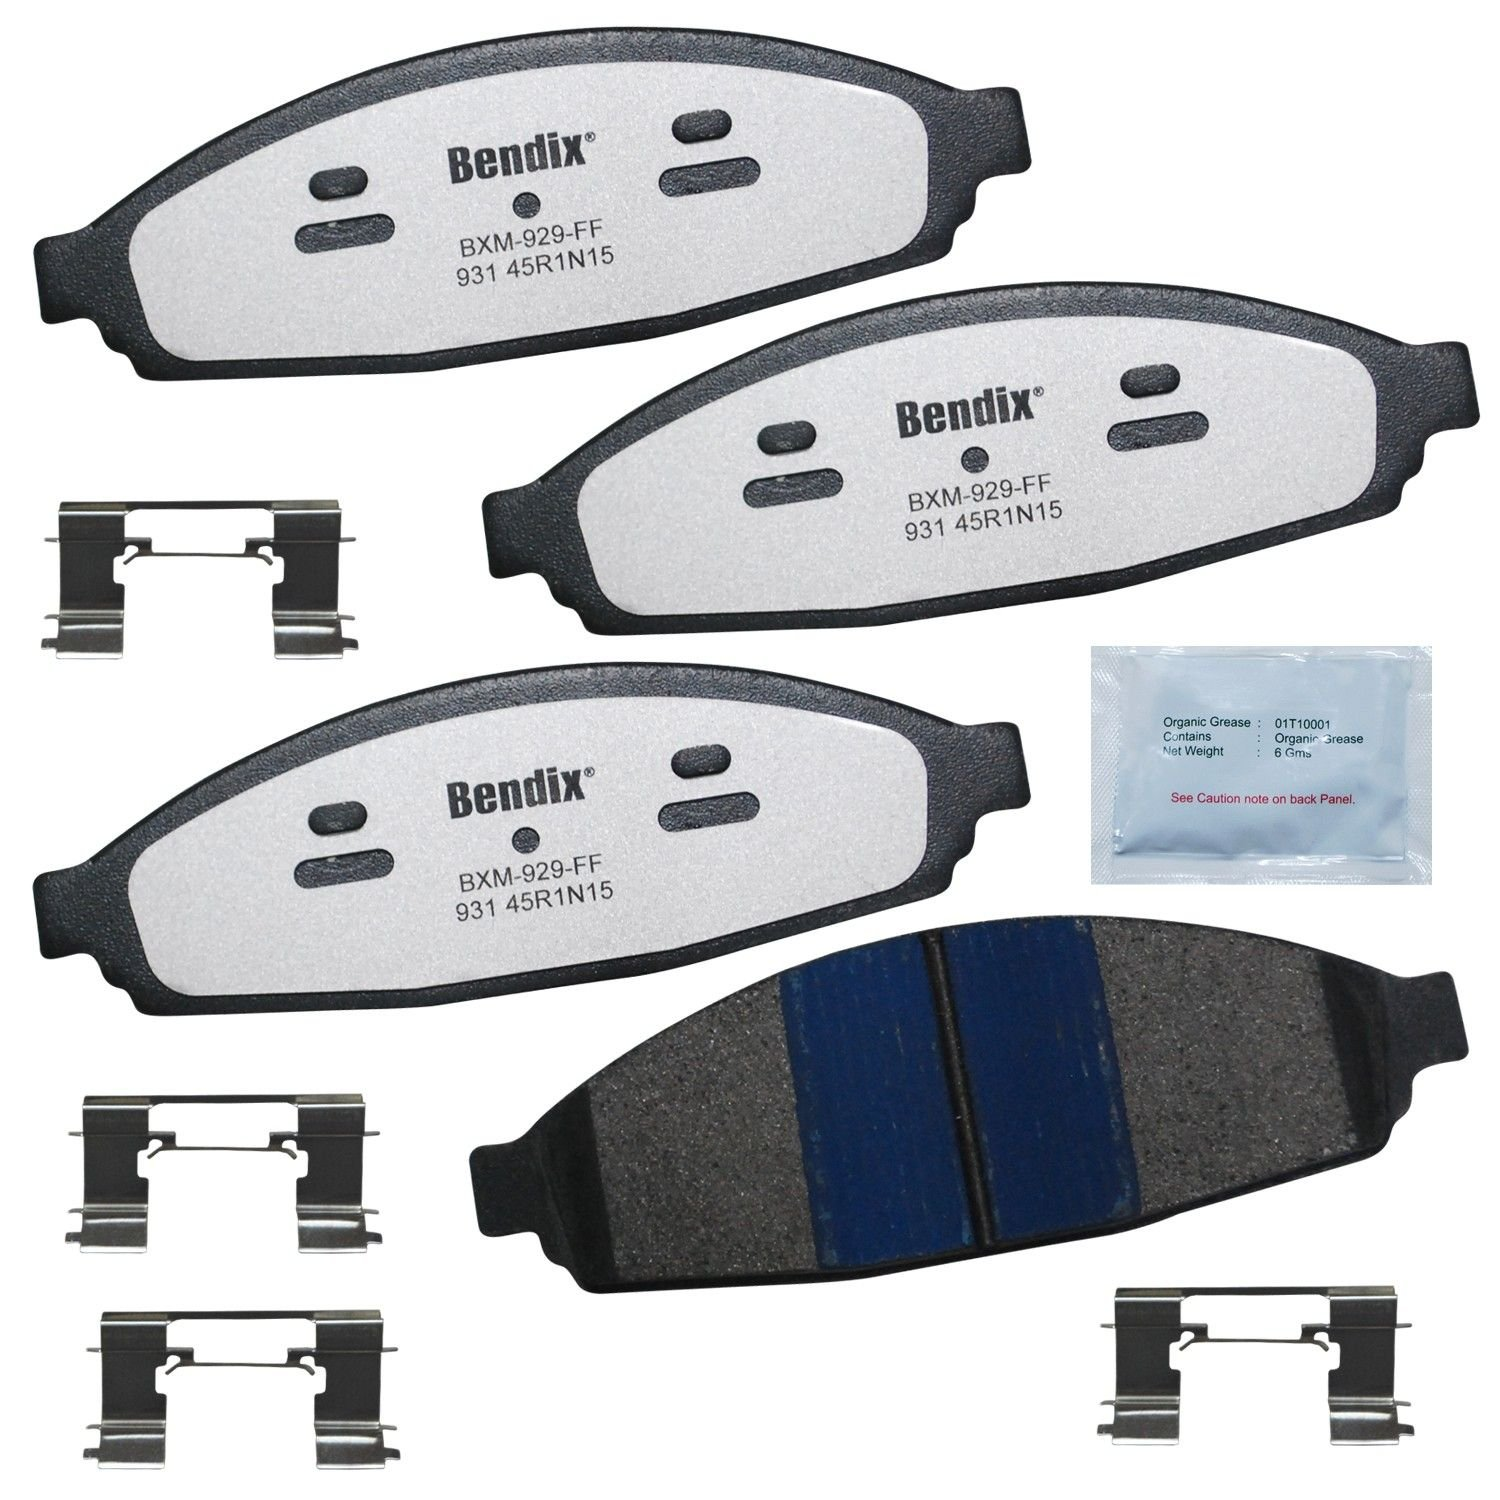 Lincoln Town Car Disc Brake Pad Replacement Akebono Bendix Bosch Sleep 2003 Front Mkd931fm Abutment Kit Included